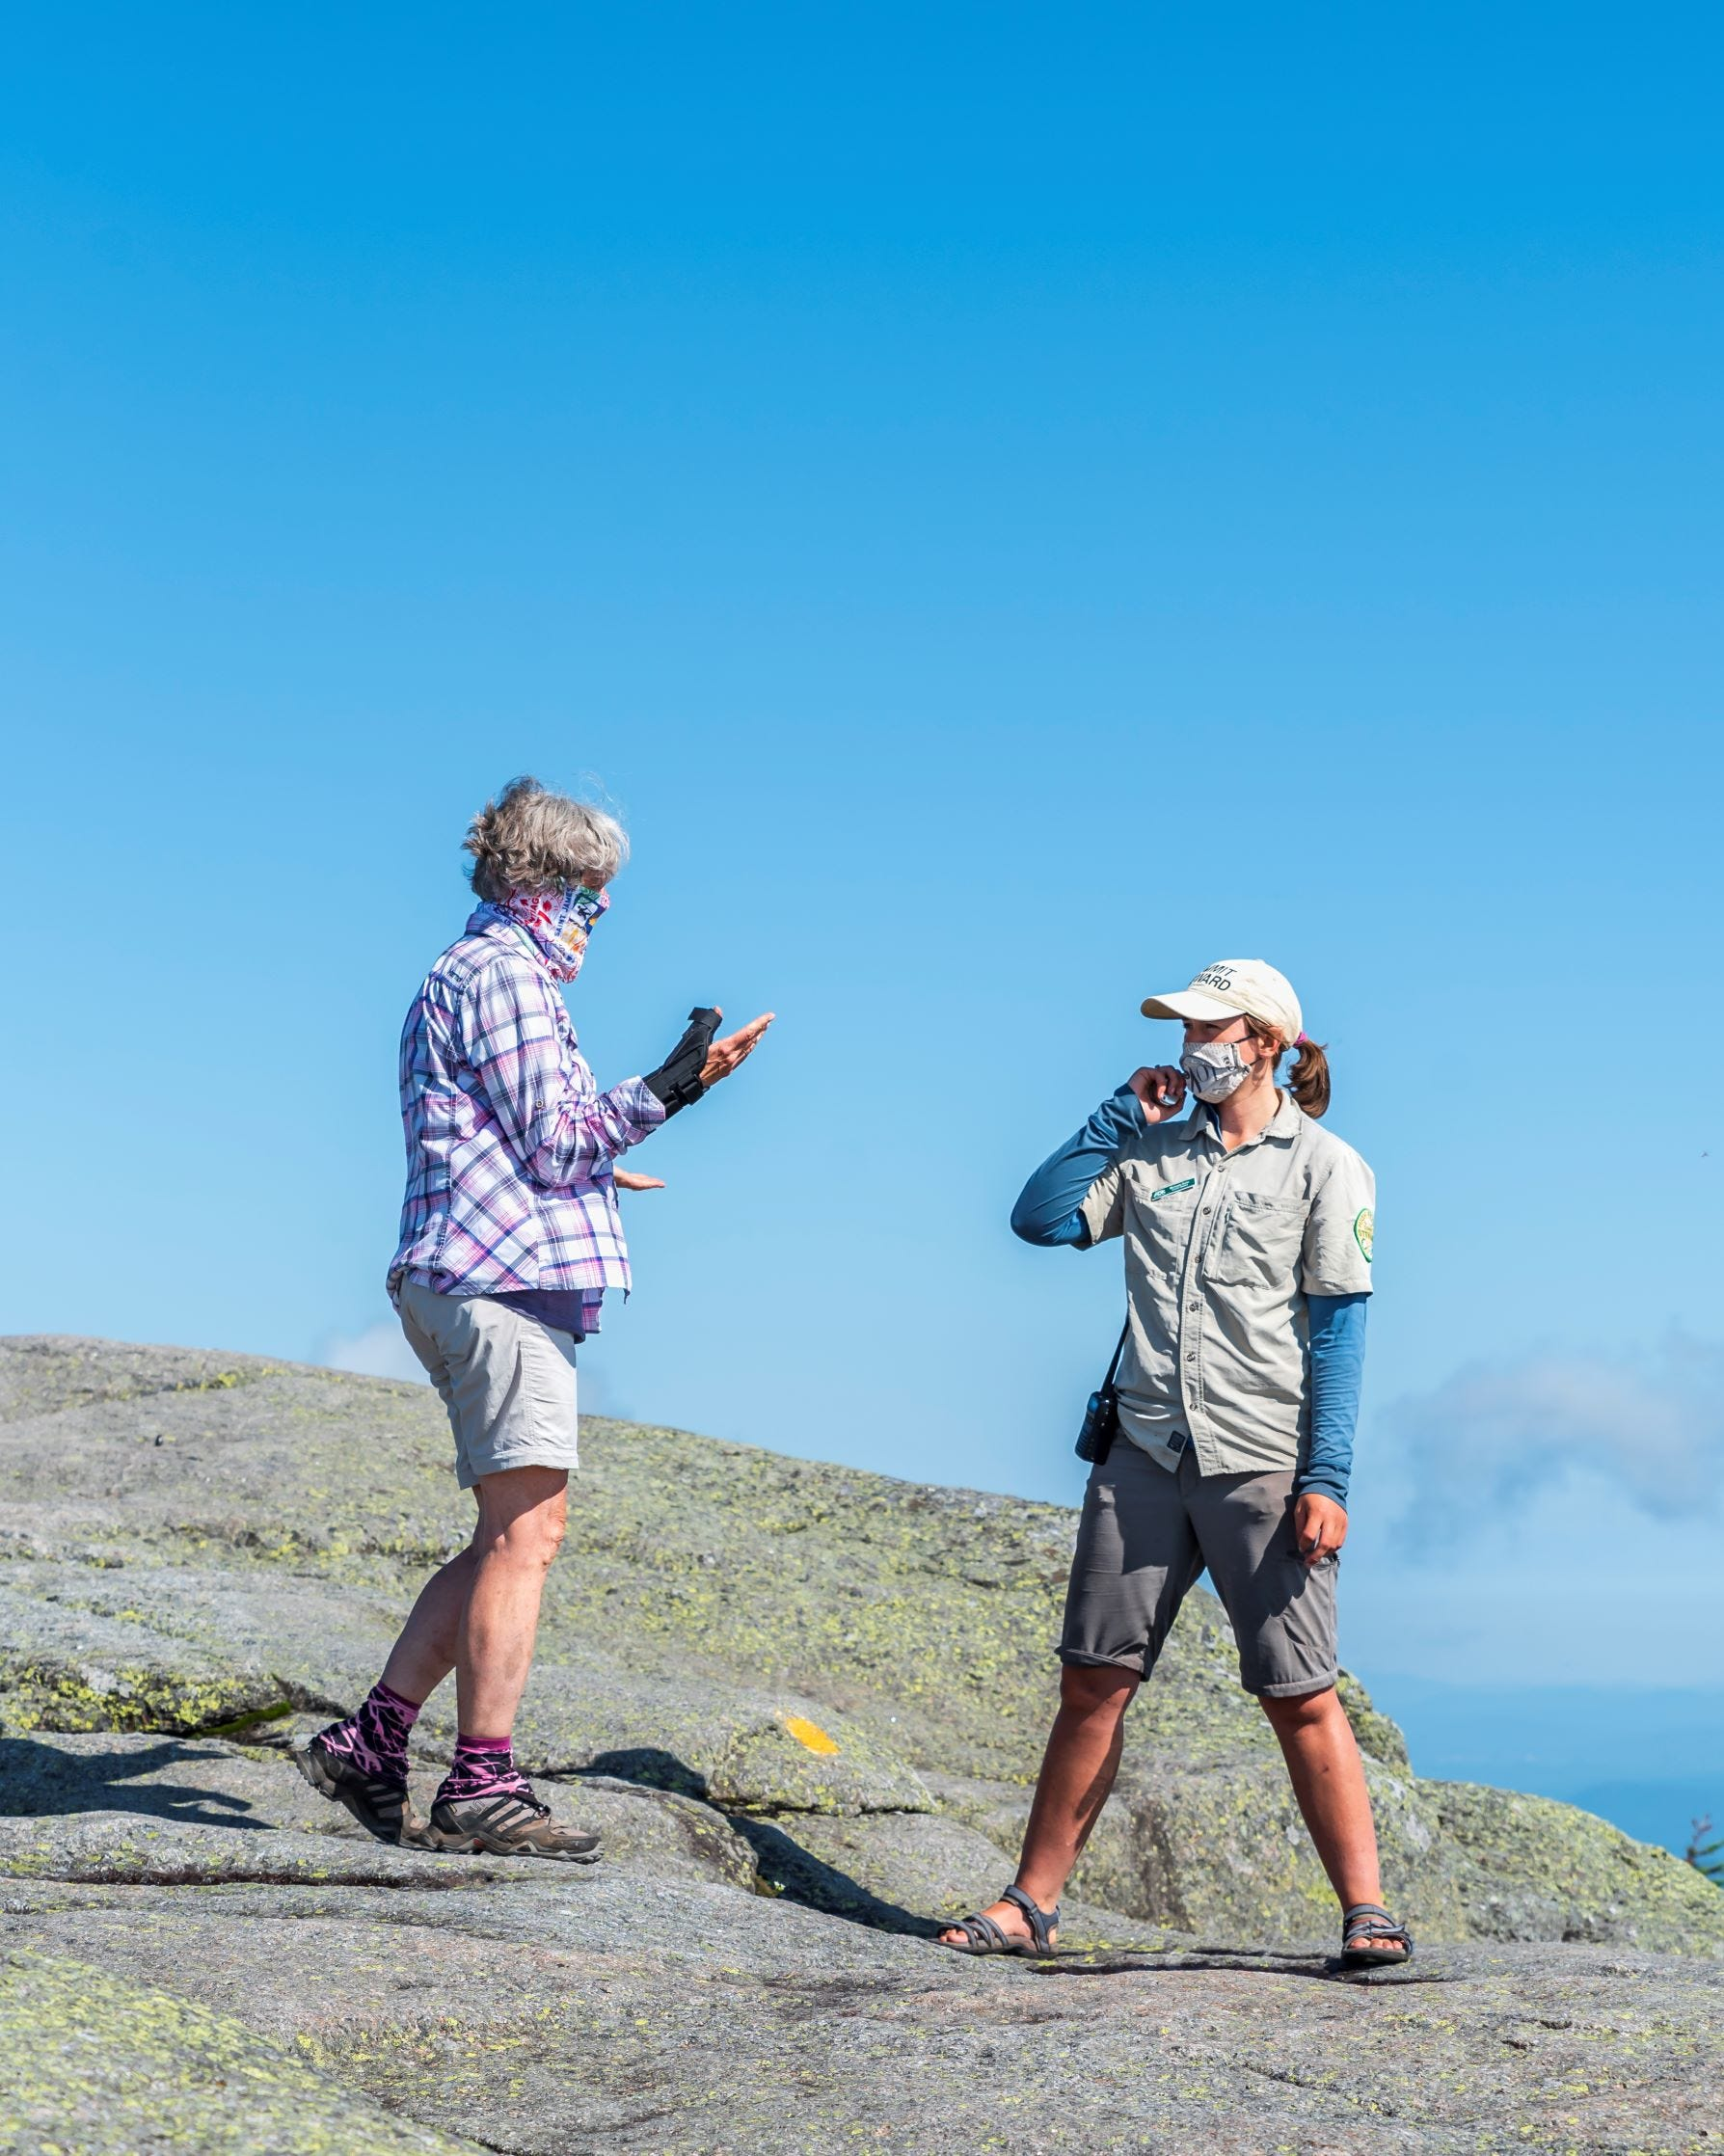 Michaela Dunn, a steward with the Summit Steward Program in the High Peaks of the Adirondack Park, talks with a hiker earlier this summer.